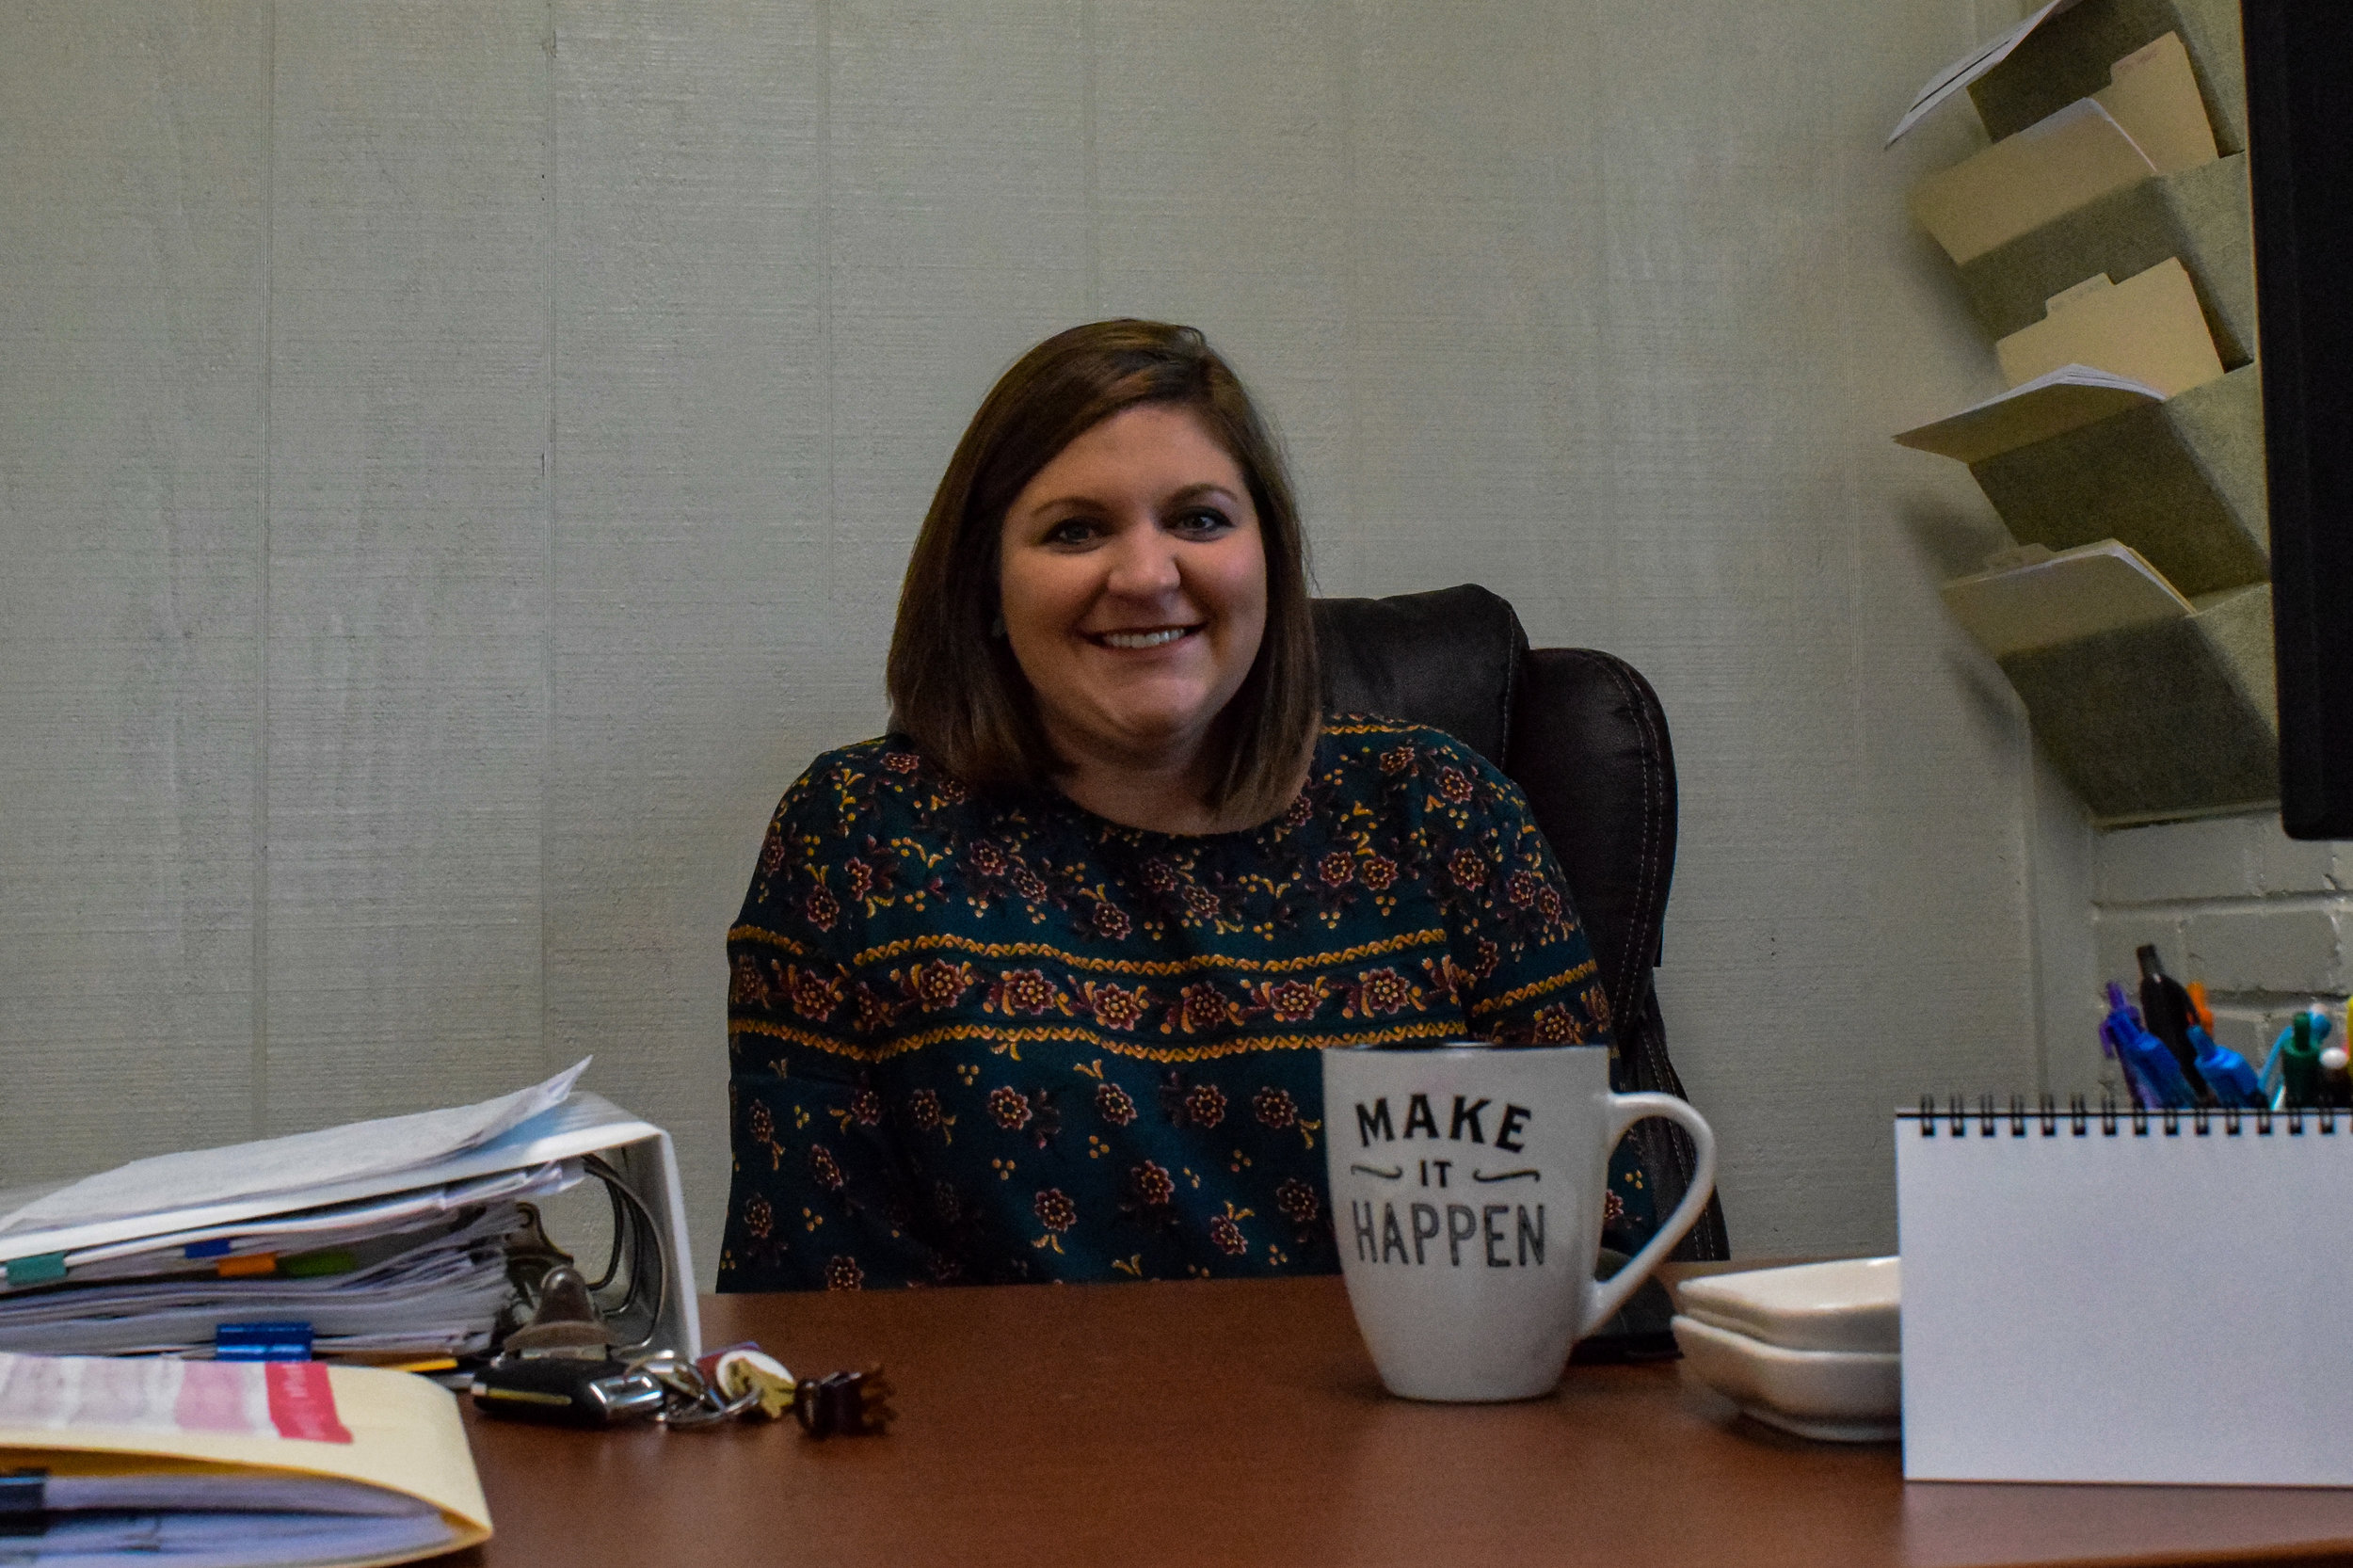 This is Alicia Hyatt. She works as an academic counselor, but also teaches some reading classes at the school. Hyatt received her Bachelor's Degree in exercise fitness, but then worked at Winthrop as an academic counselor and realized her love for helping first generation college students through college.